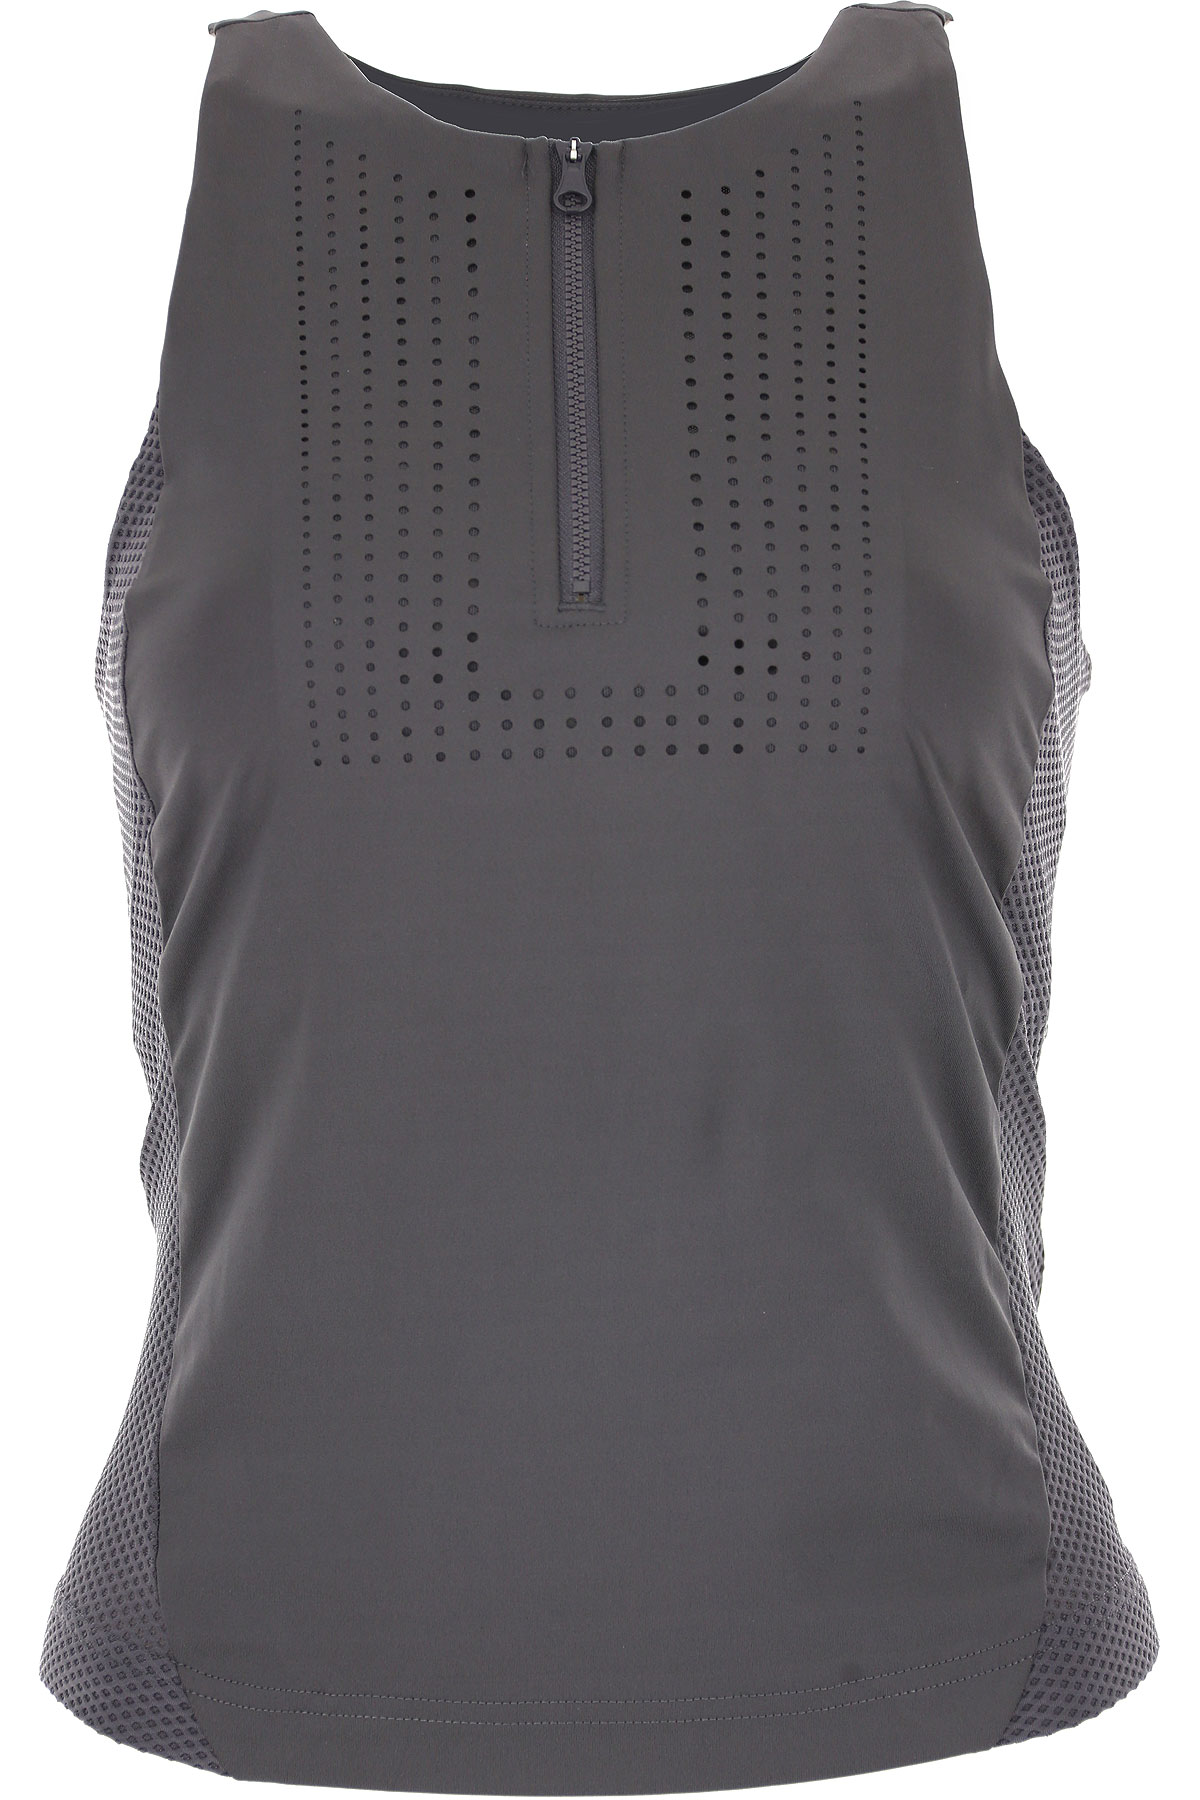 Image of Adidas Top for Women On Sale in Outlet, Asphalt Grey, Polyestere Recycled, 2017, 2 4 6